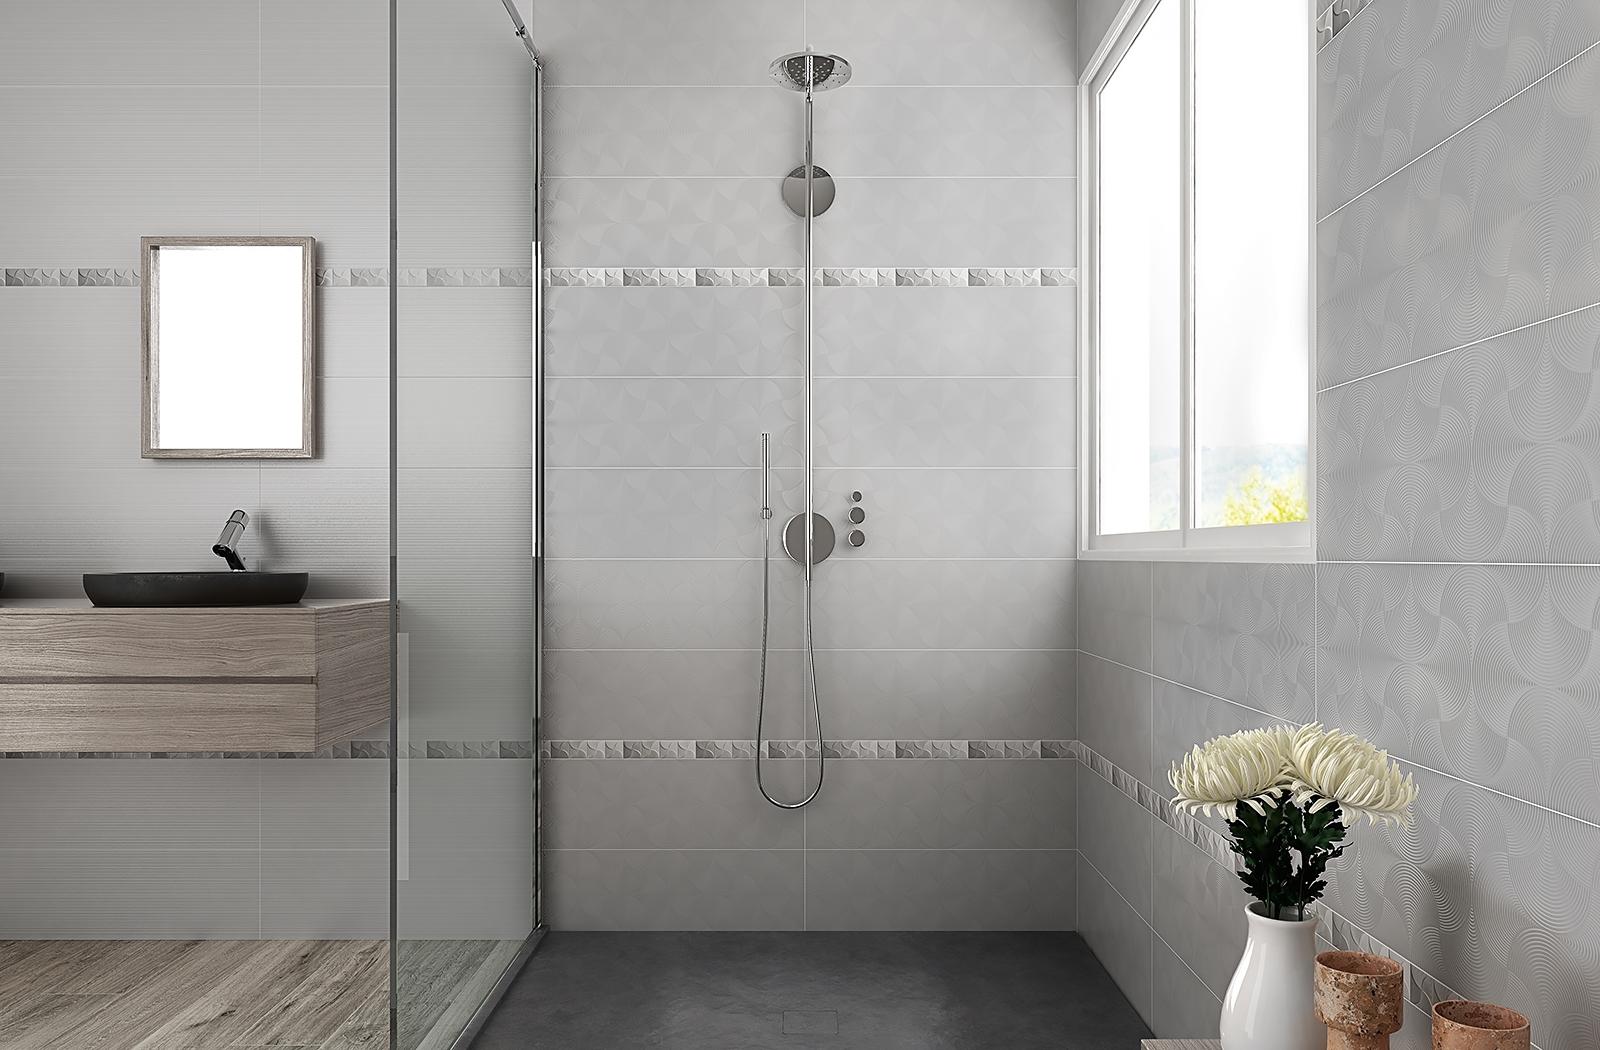 Triboo Series | Porcelain | Olympia Tile 40+ Olympia Tile Bathroom Inspirations